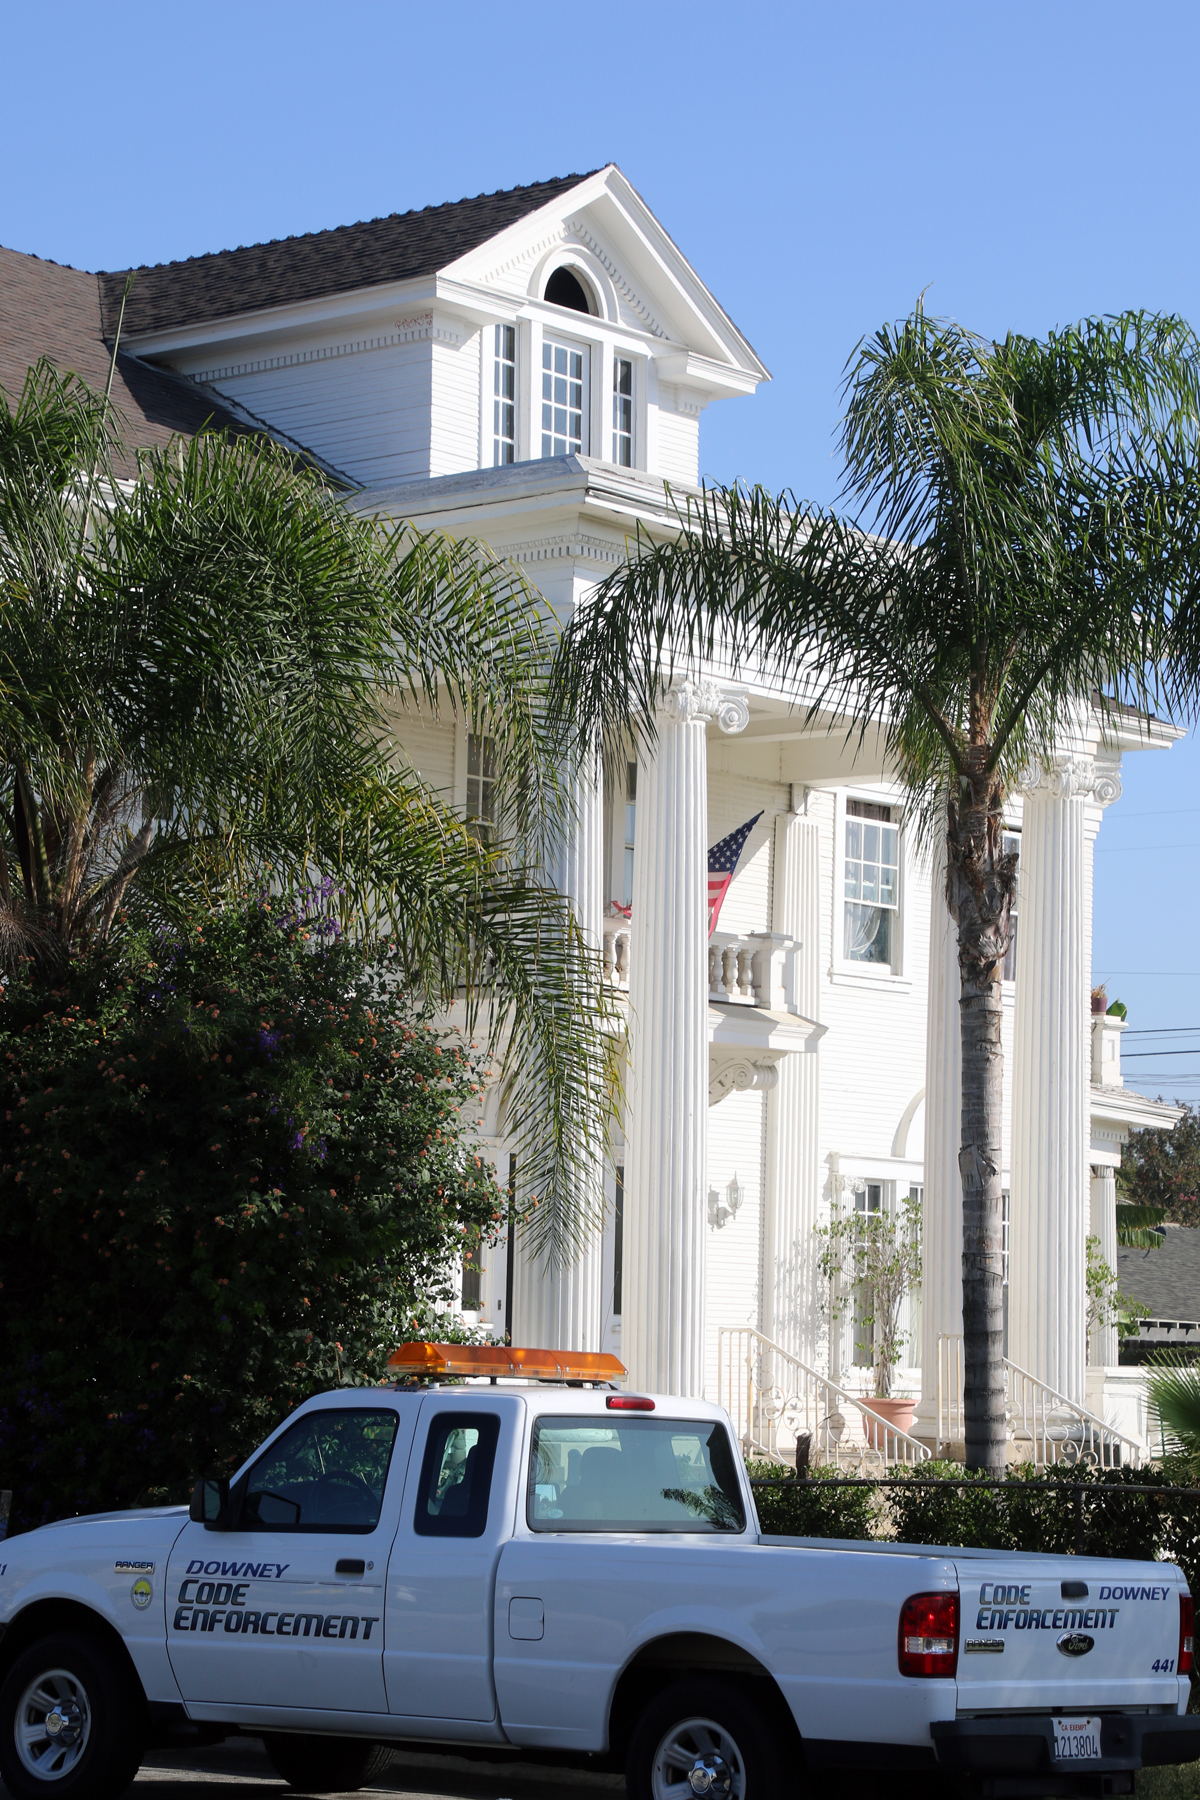 City crews began clean-up efforts at the Rives Mansion property Wednesday. Photo by Eric Pierce